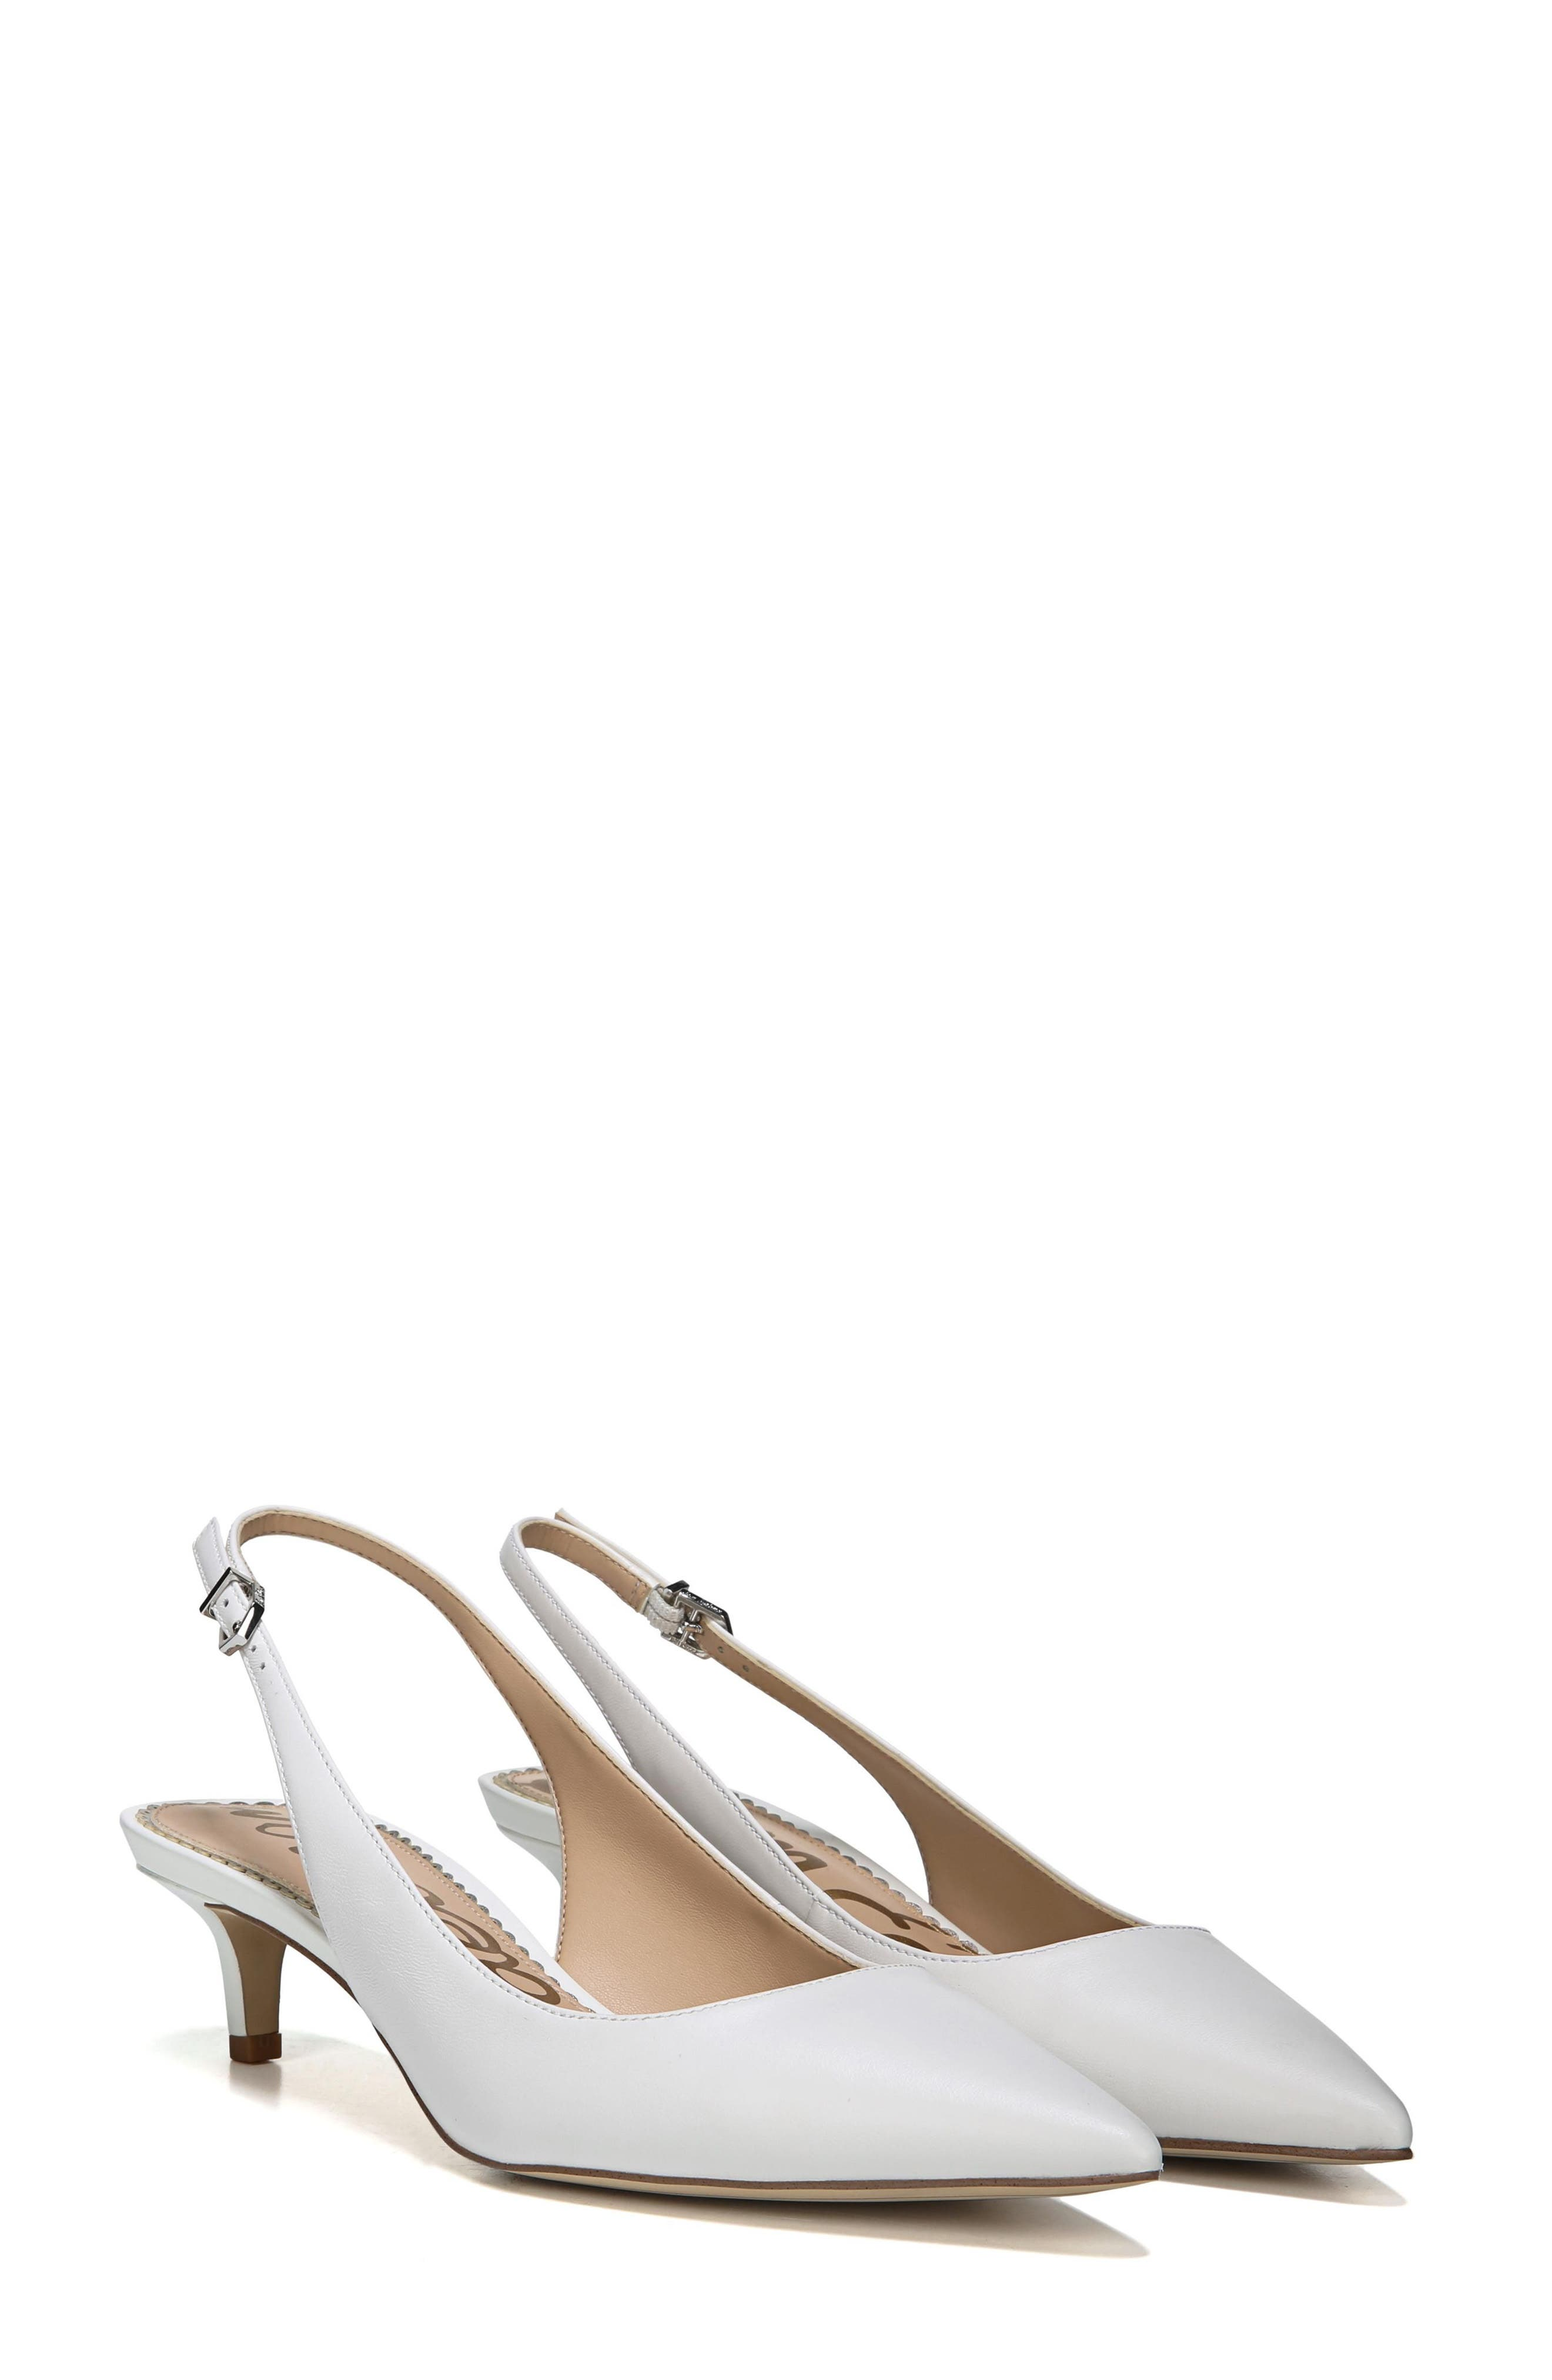 Ludlow Slingback Pump,                             Main thumbnail 1, color,                             BRIGHT WHITE LEATHER